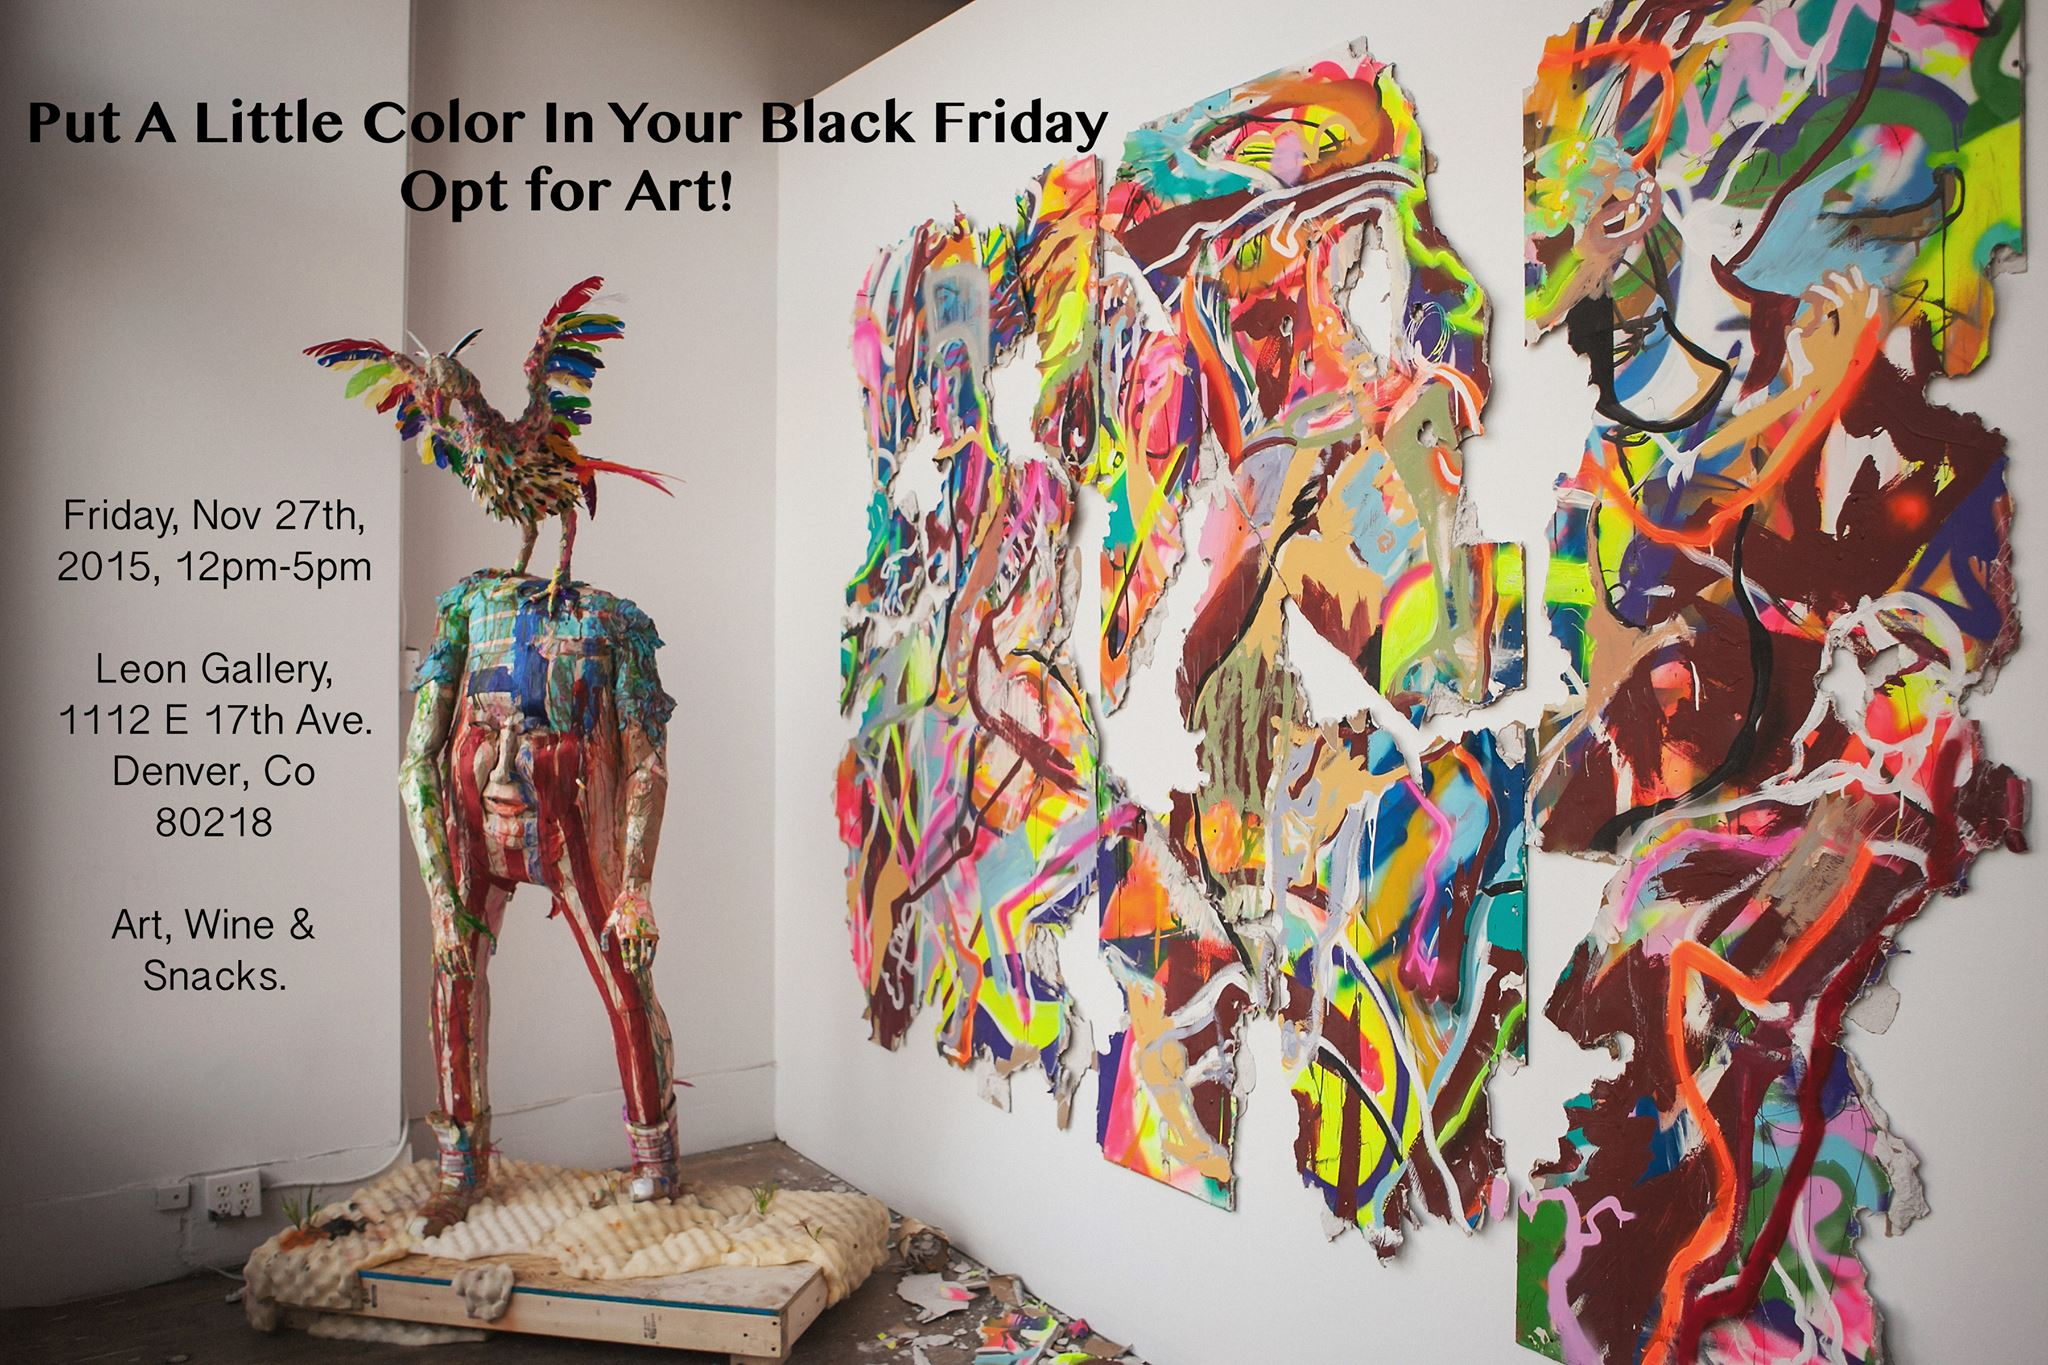 We are very excited to announce that Leon Gallery is teaming up with  Clyfford Still Museum  to bring a little color and art into the Black Friday madness. With your visit,to Leon, receive a free ticket to the  Clyfford Still Museum ! This year, brighten up your Black Friday by visiting Leon Gallery and opting for art instead!